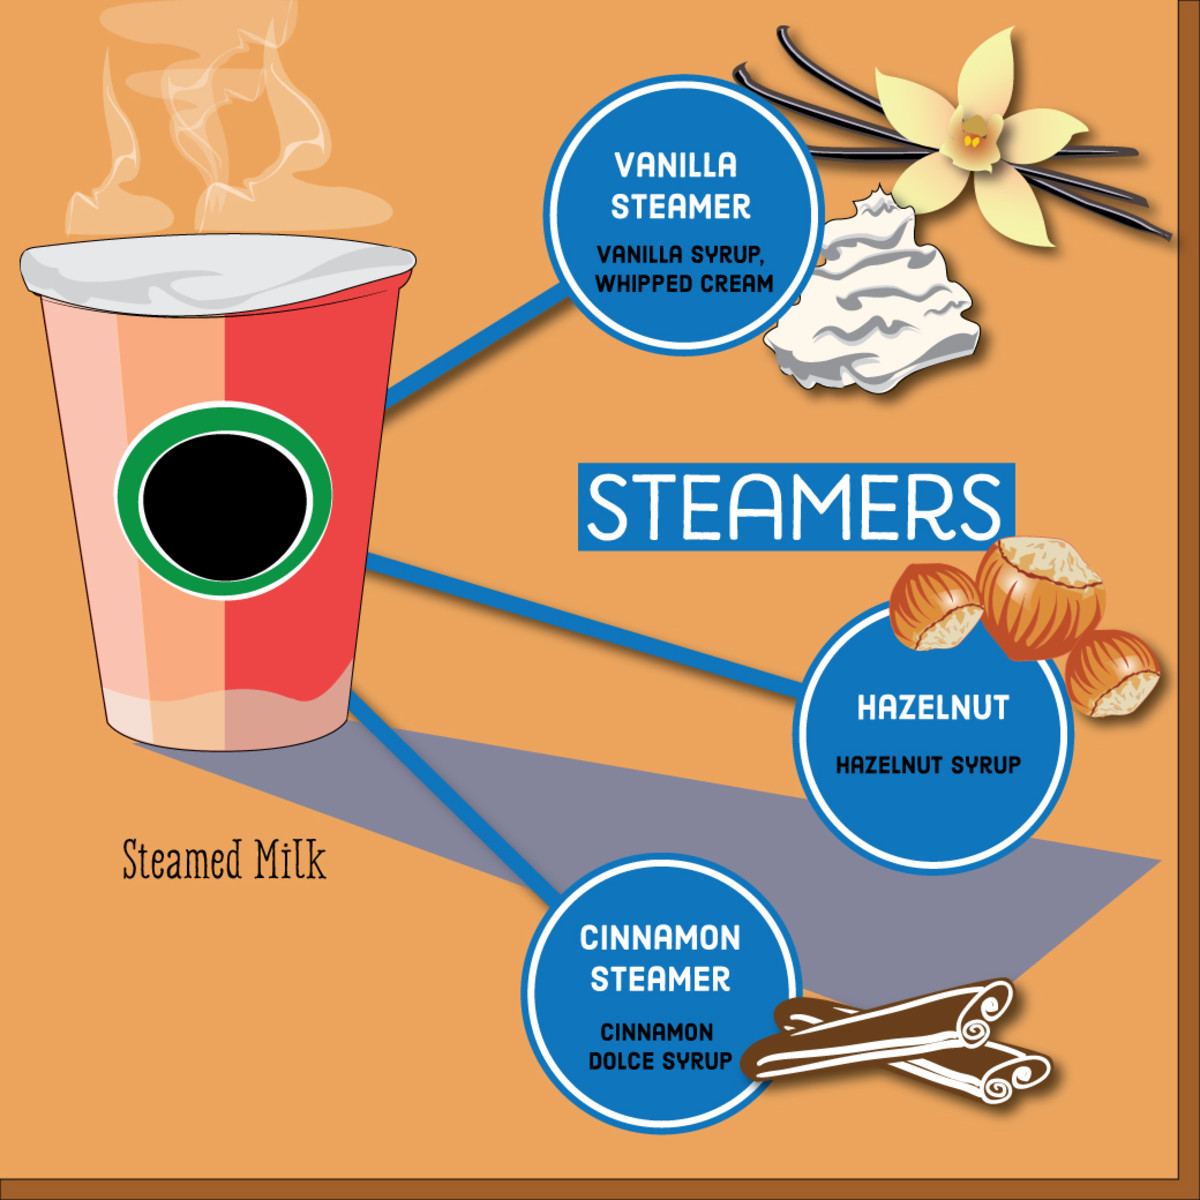 Different types of caffeine-free steamers.